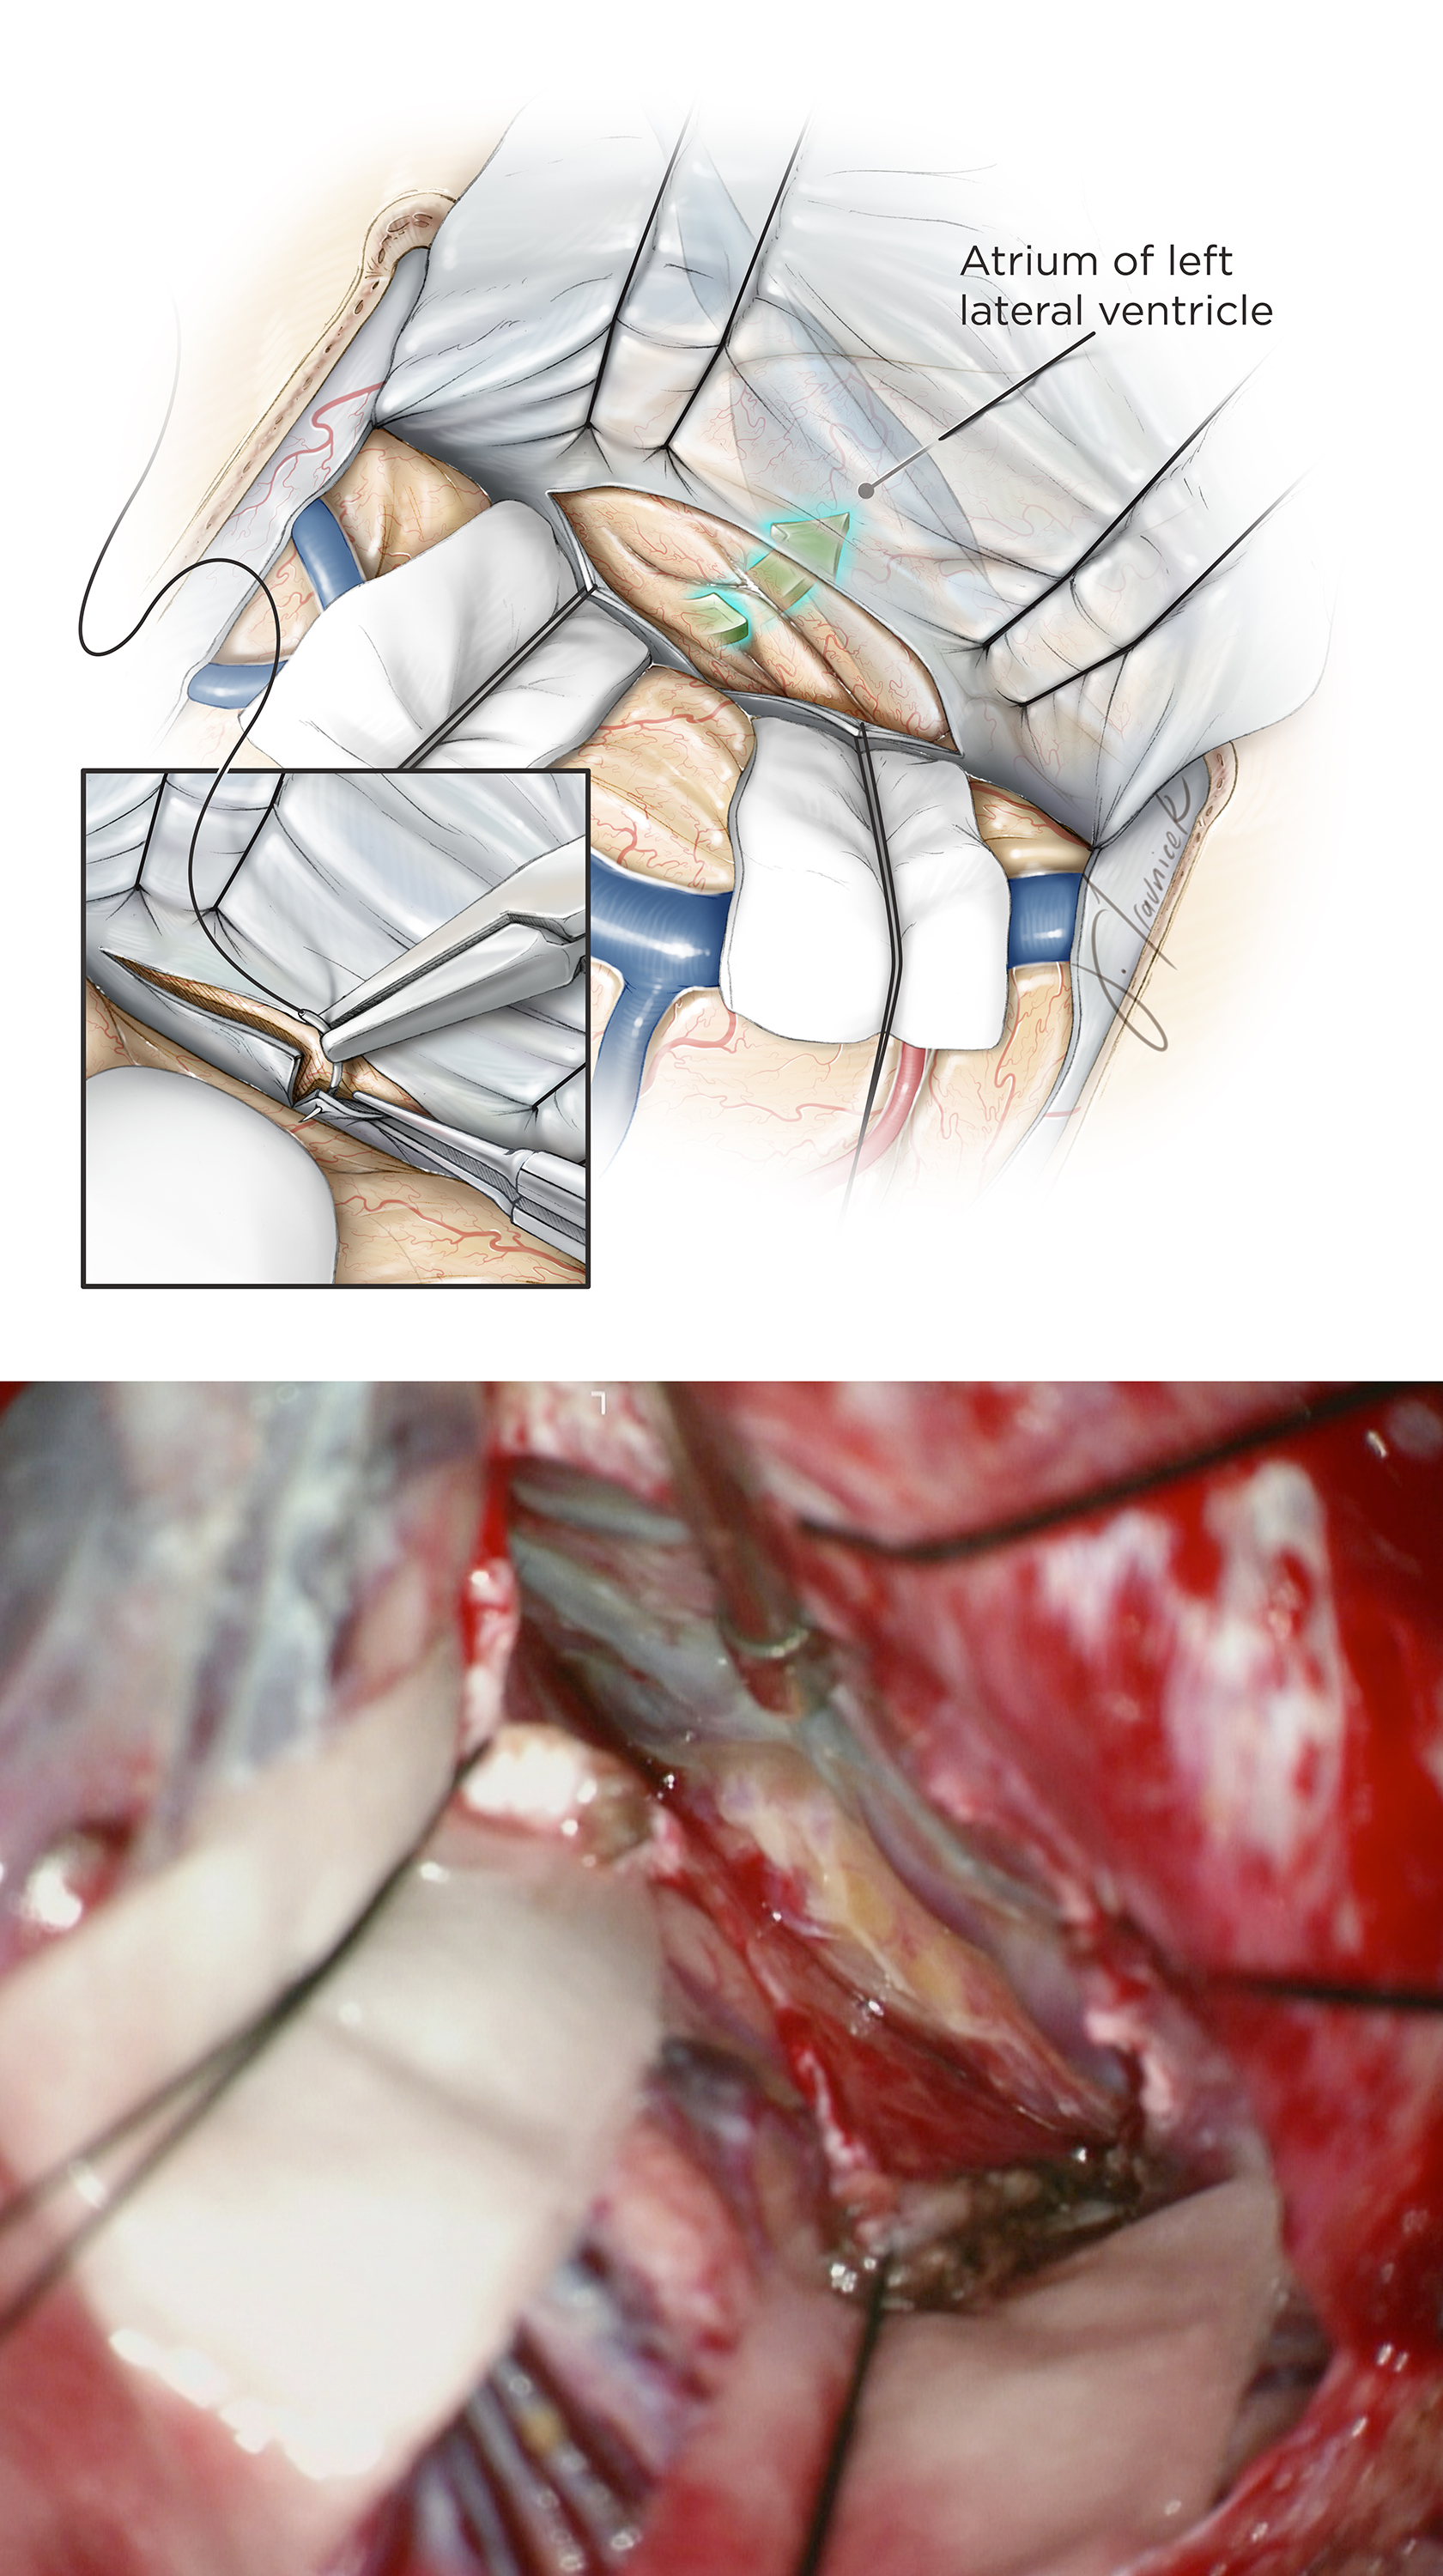 Figure 12: Additional sutures are placed on the falcine dural flaps (inset image) to mobilize the contralateral (to the lesion) hemisphere and increase the transfalcine working angle toward the ipsilateral atrium (upper image). Corresponding intraoperative image for exposing the left precuneus (at the tip of suction apparatus) is included (lower image). Cottonoid patties protect the contralateral unaffected hemisphere against the gentle retraction vector of the sutures. Fixed retractors are not used.